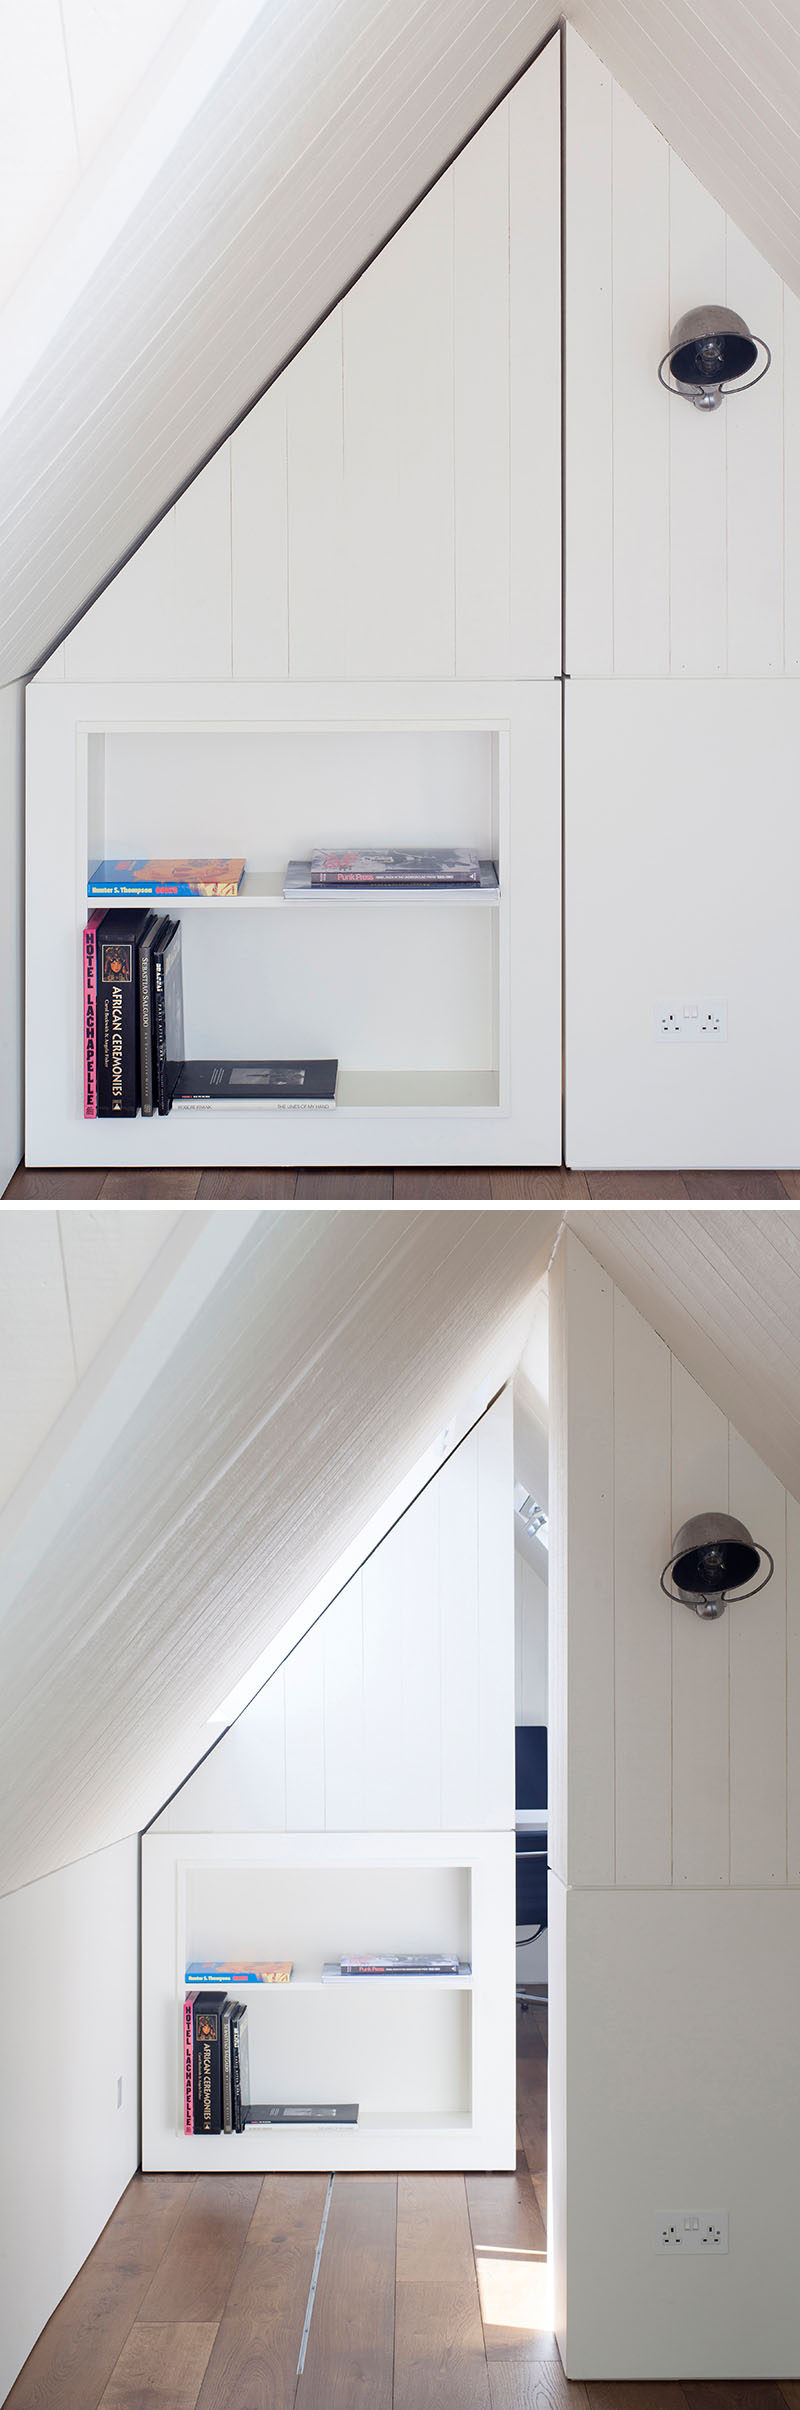 In this modern loft conversion, a wall of white paneling and shelving can be pushed back into a hidden room then slides closed again to make the space even more unique.